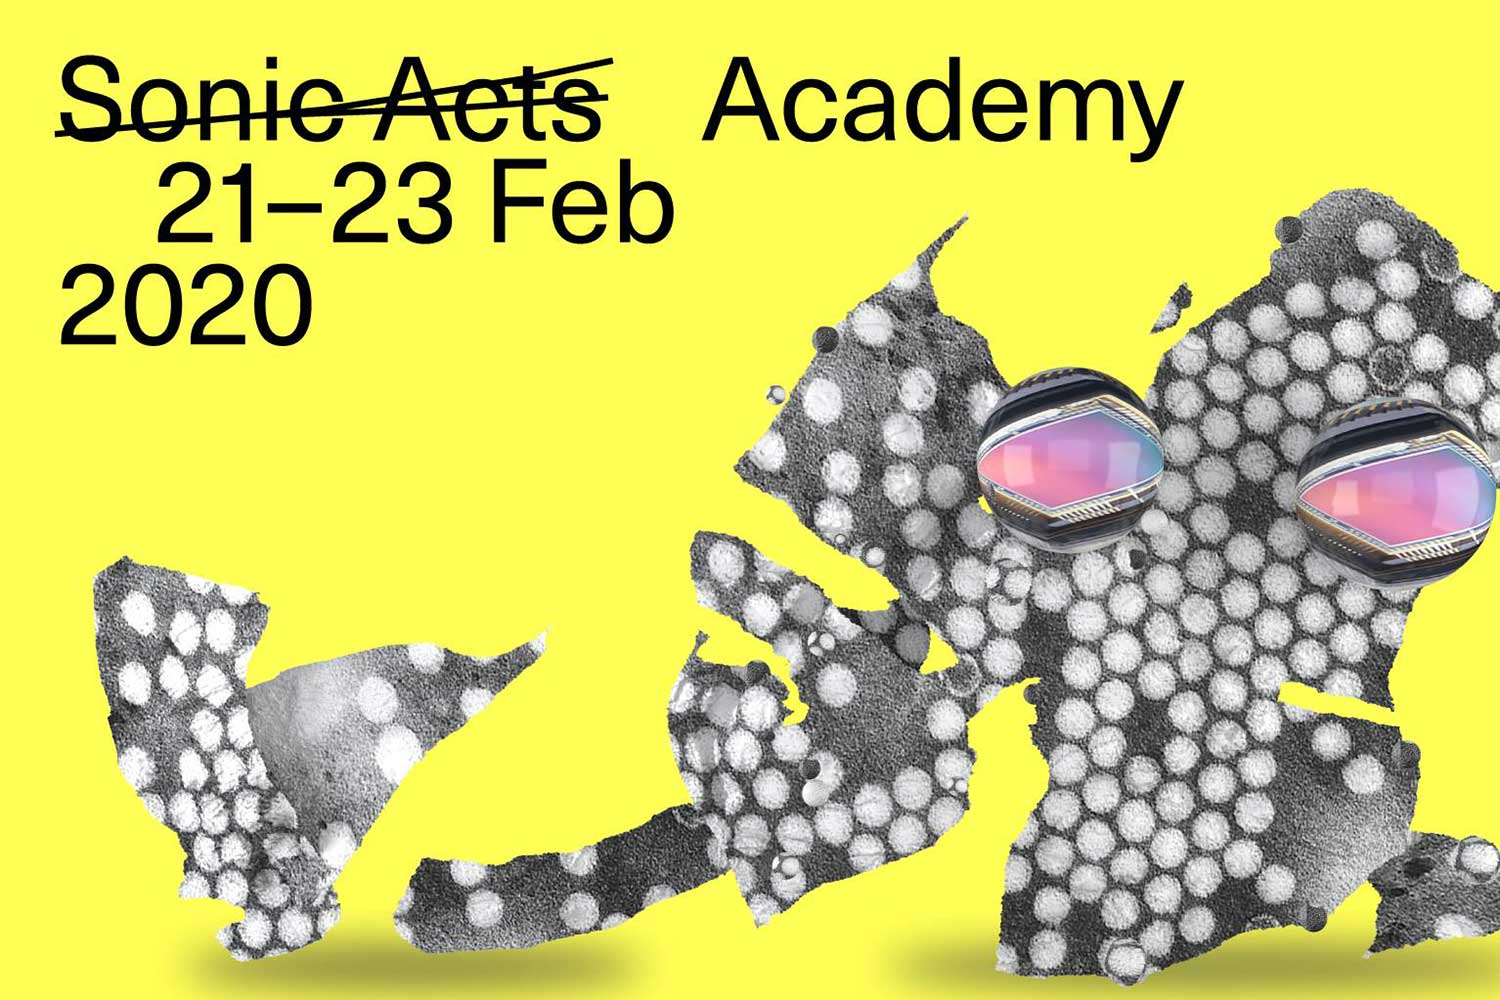 Sonic Acts Academy 2020